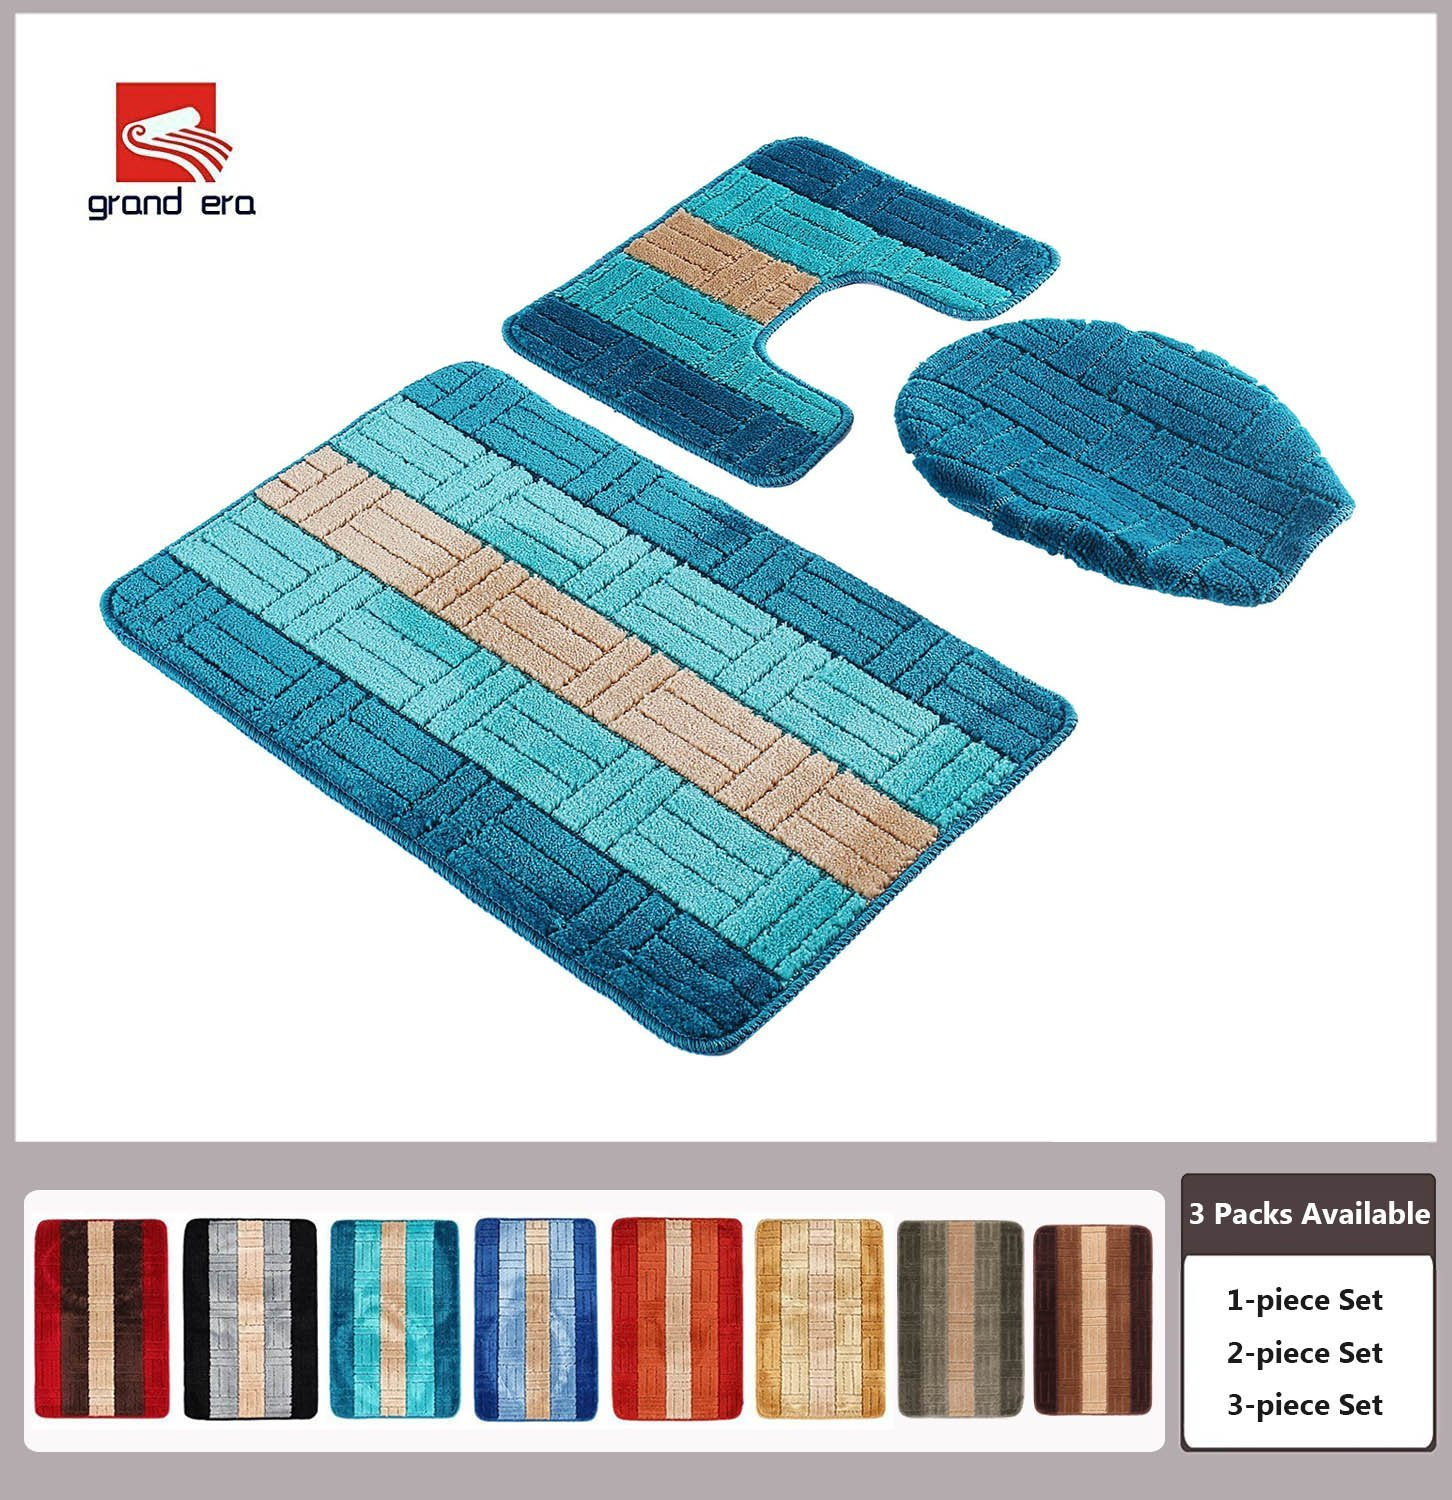 grand era 3 piece bathroom rug polypropylene fiber mat set and contour rug set 197 - 3 Piece Bathroom Rug Sets